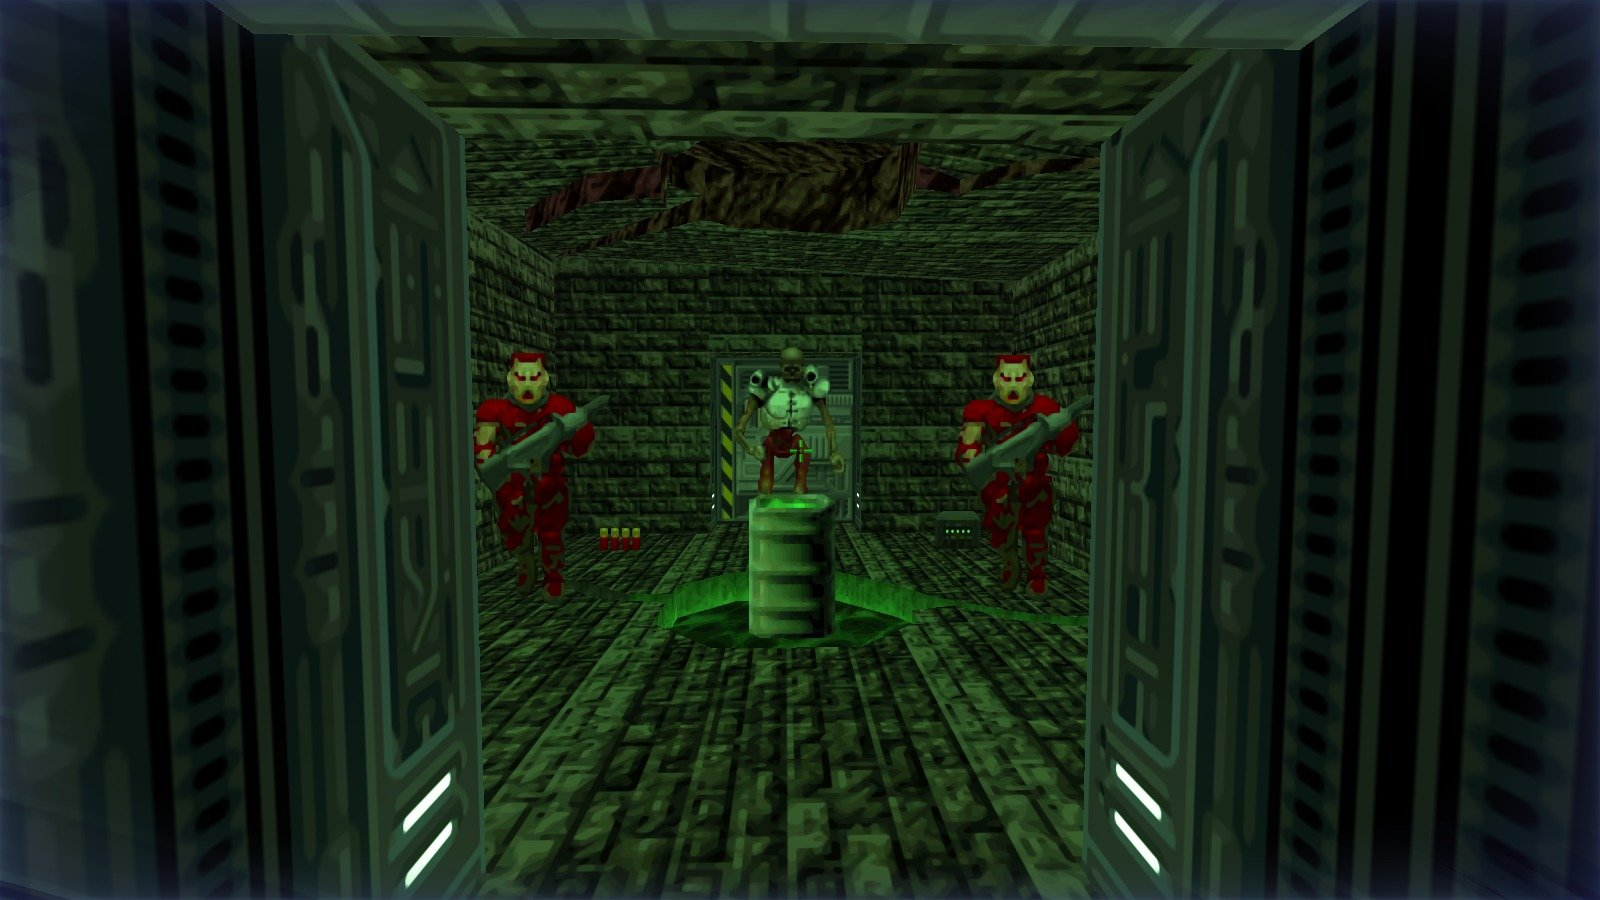 DRRP Doom RPG Remake Project REAC Reactor Barrel Revenant Zombie Cpt Acid Green Screenshot